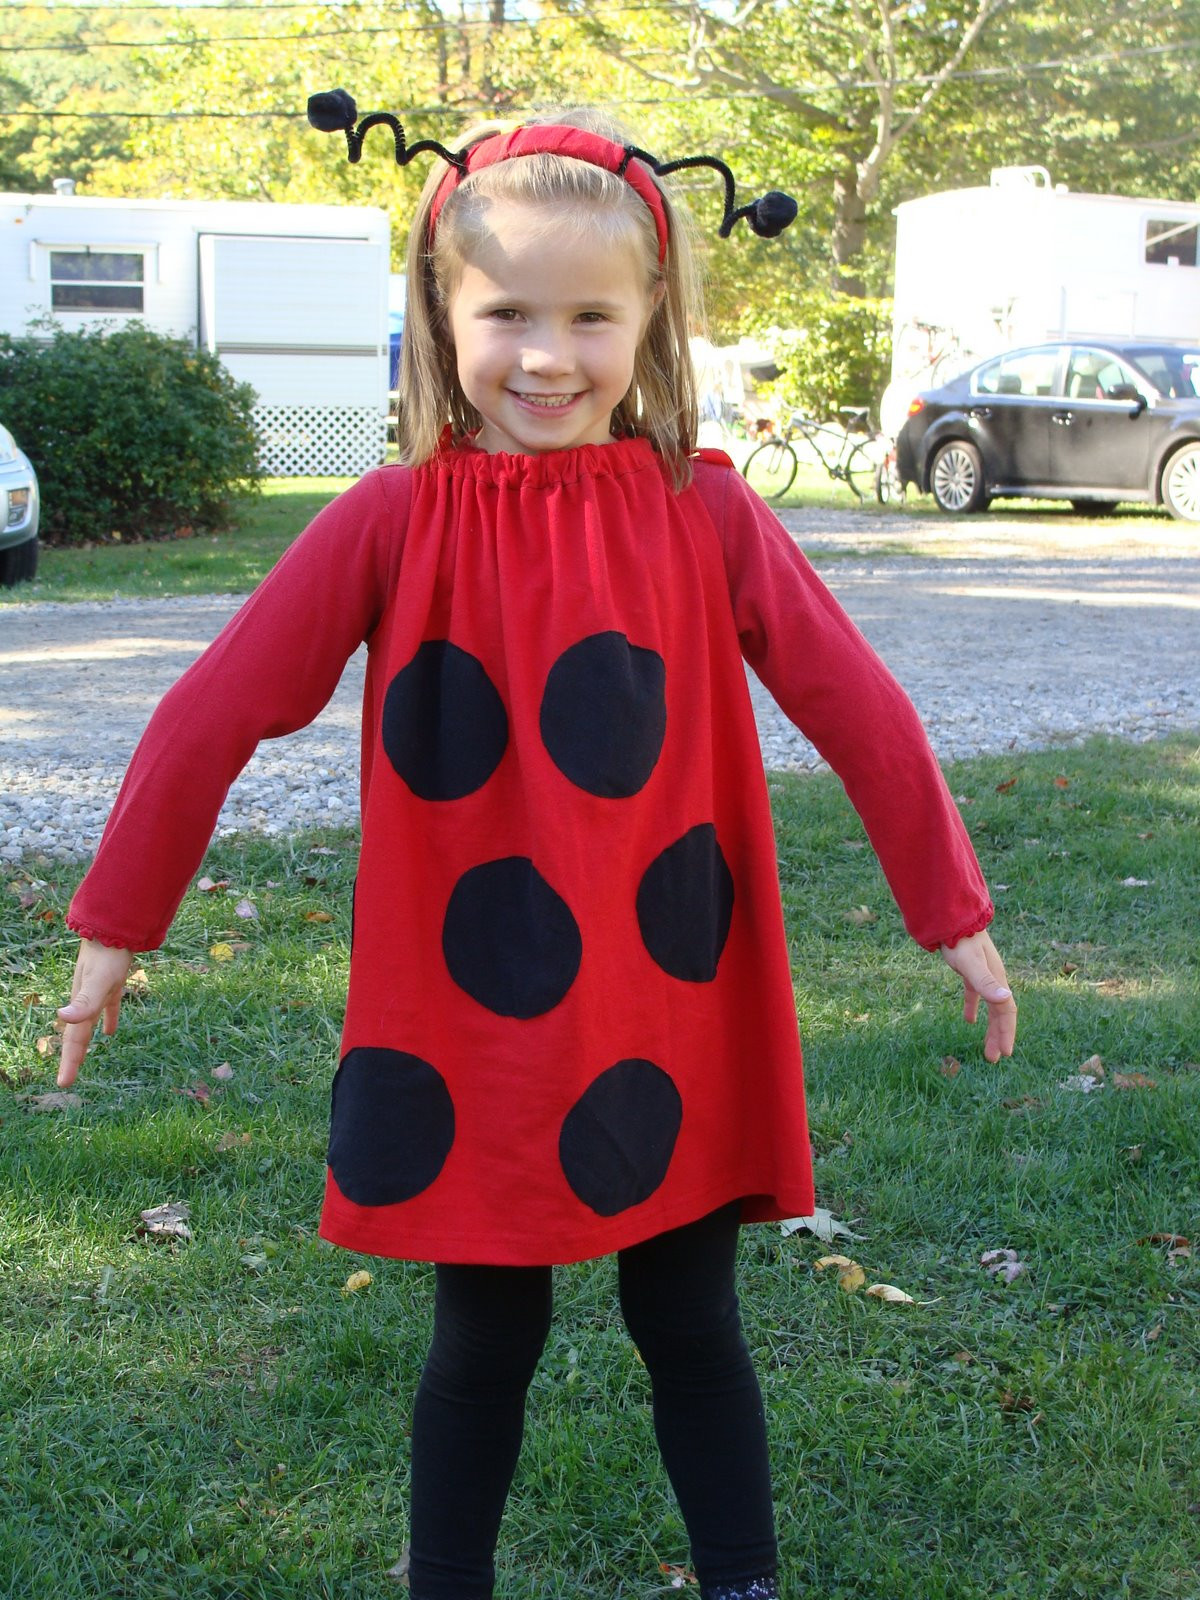 Best ideas about DIY Bug Costume . Save or Pin 7 All To her Super Easy LadyBug Costume Now.